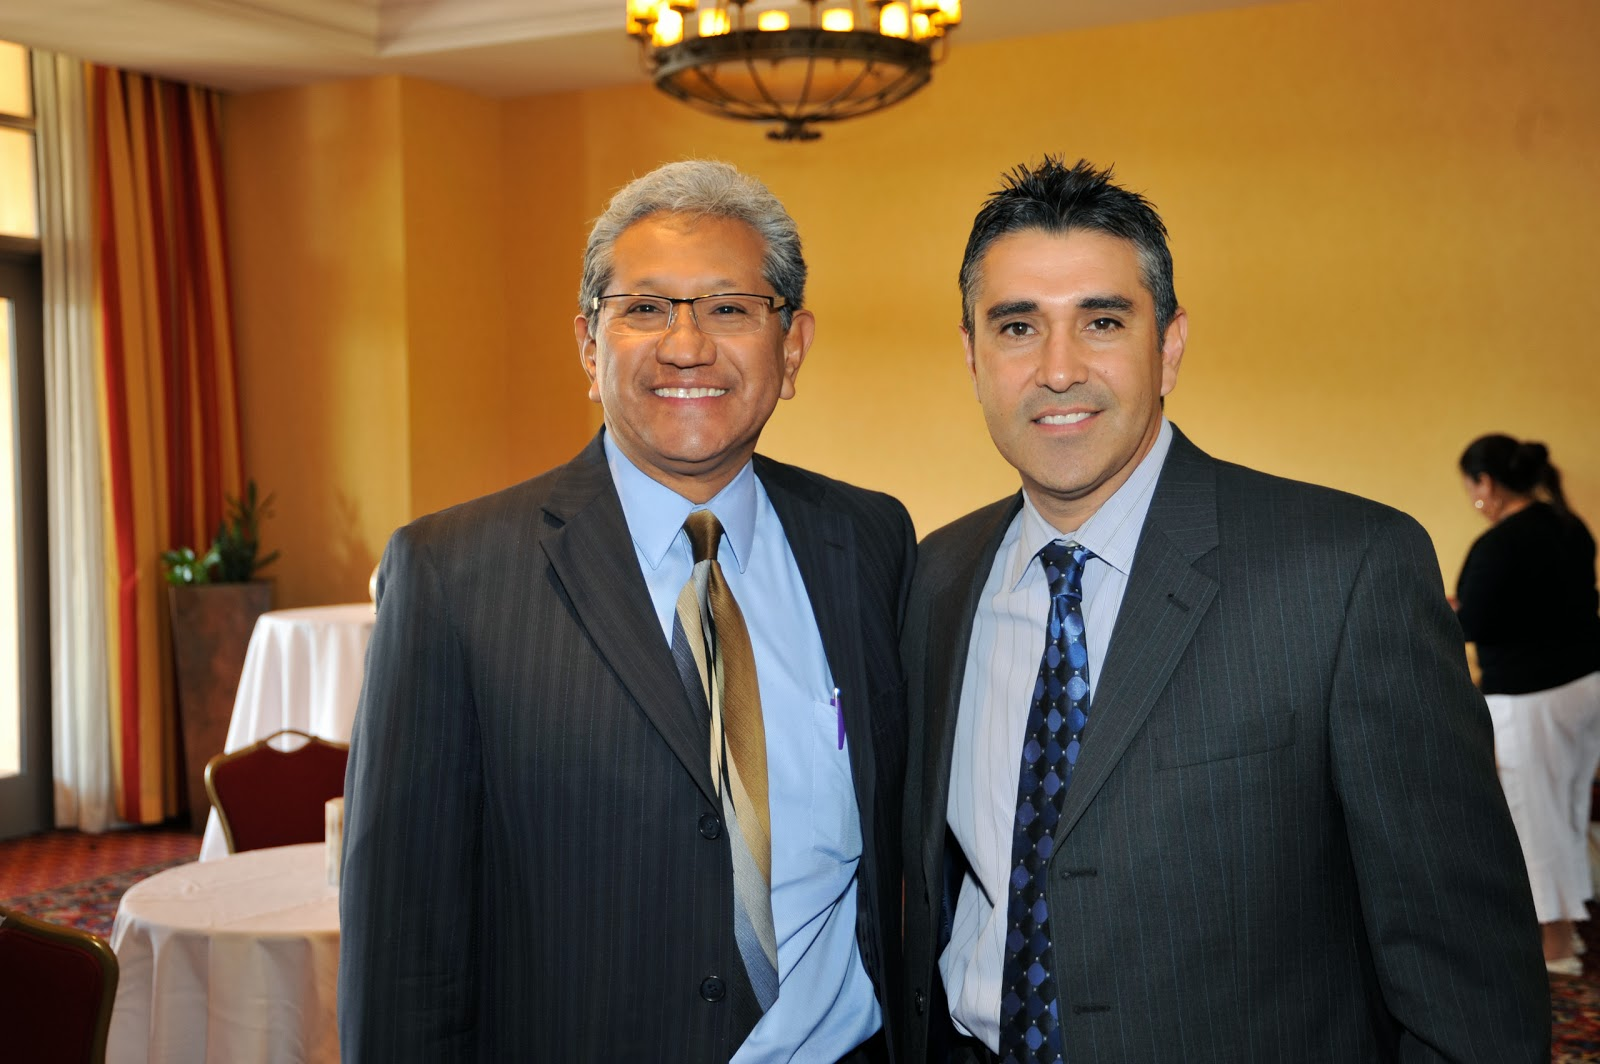 2013 State of the City - 130219-TucsonChamber-StateOfCity-005.jpg